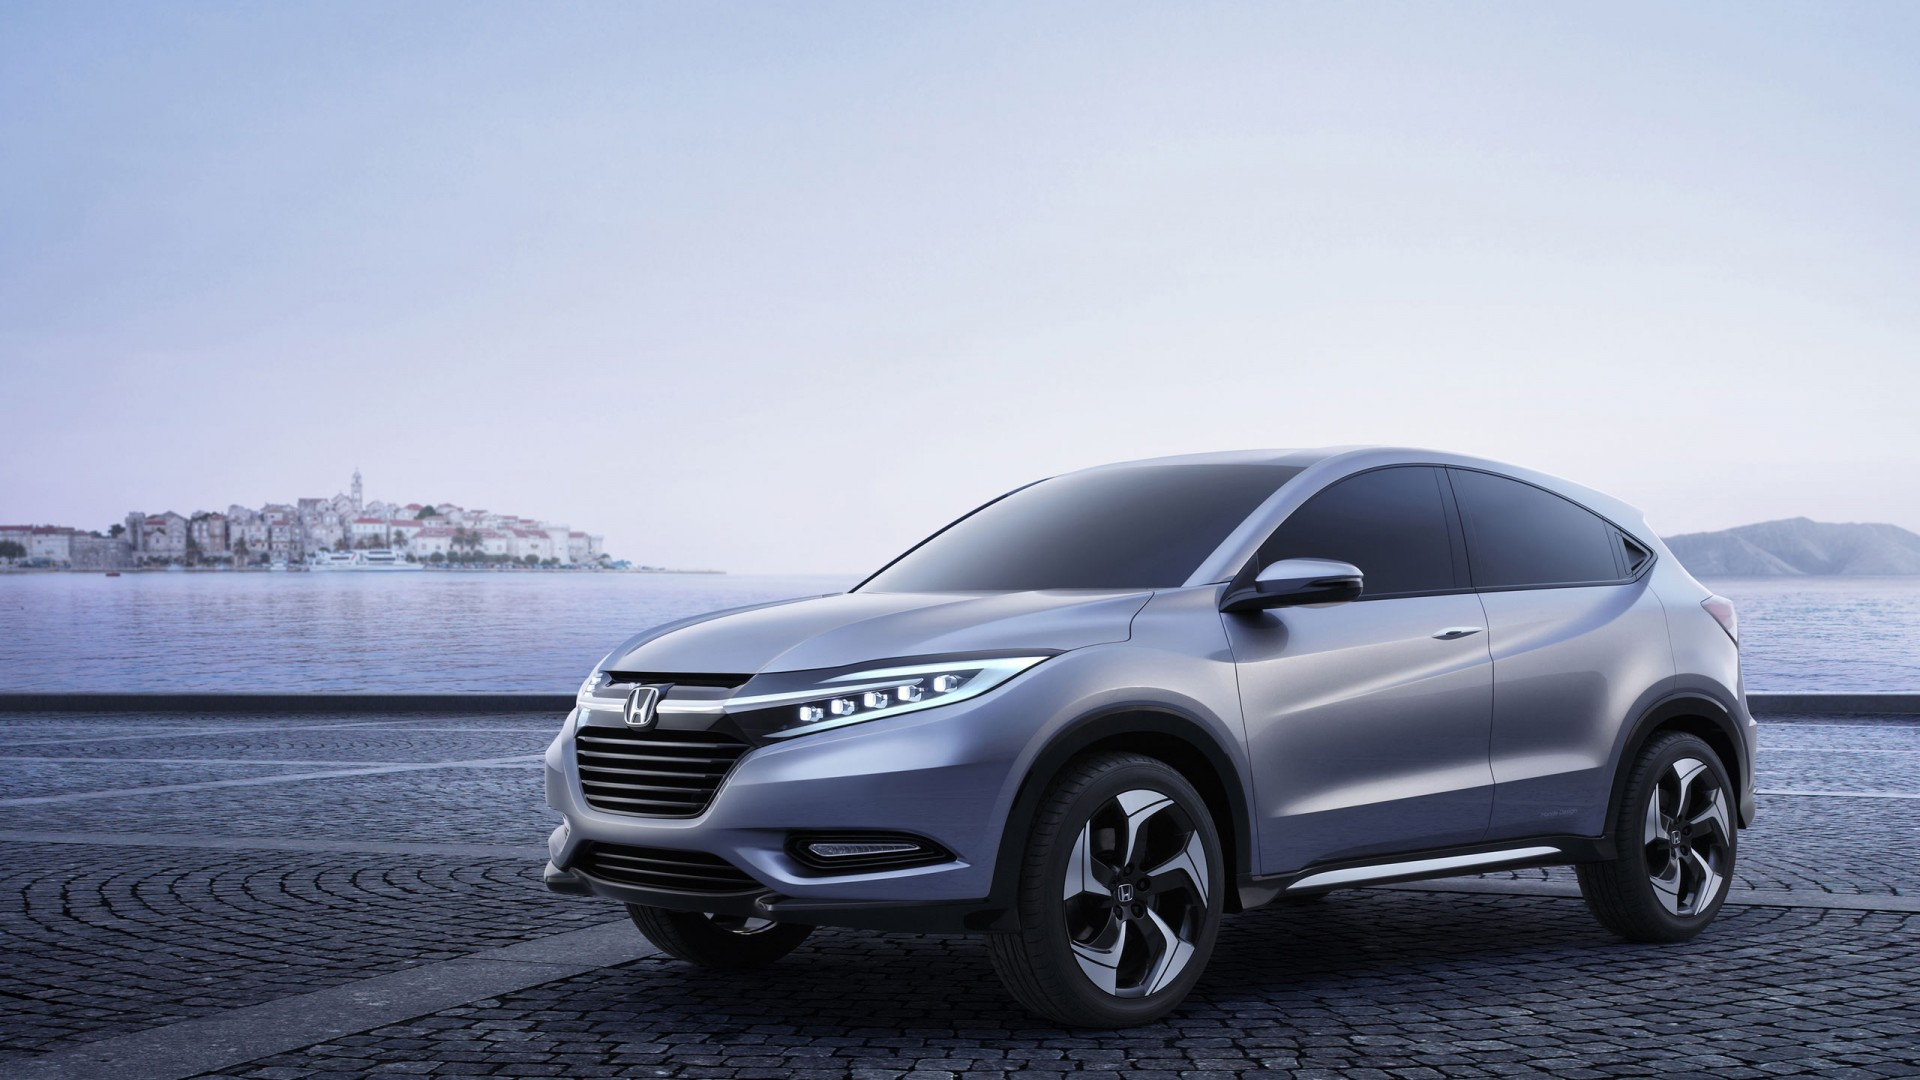 Honda Urban SUV Concept Wallpaper | HD Car Wallpapers | ID ...